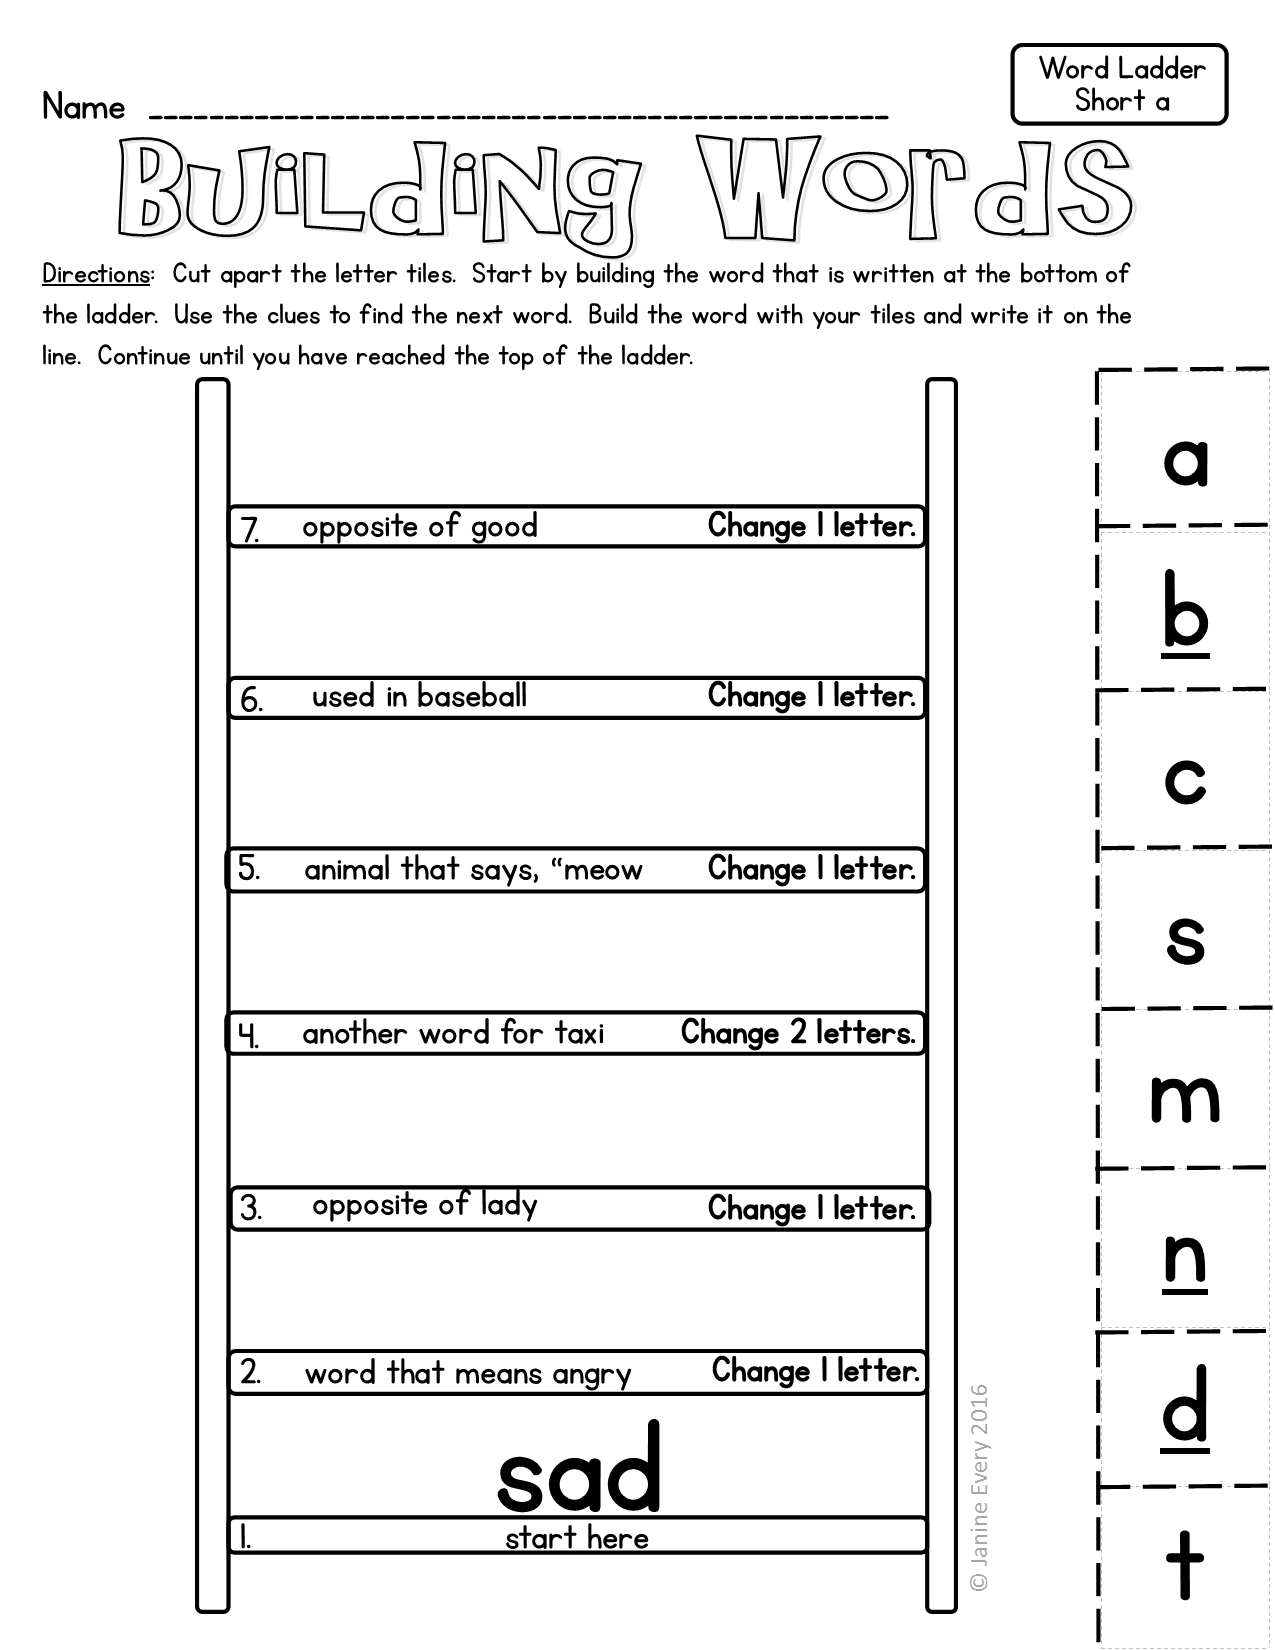 Best Word Ladders Printable